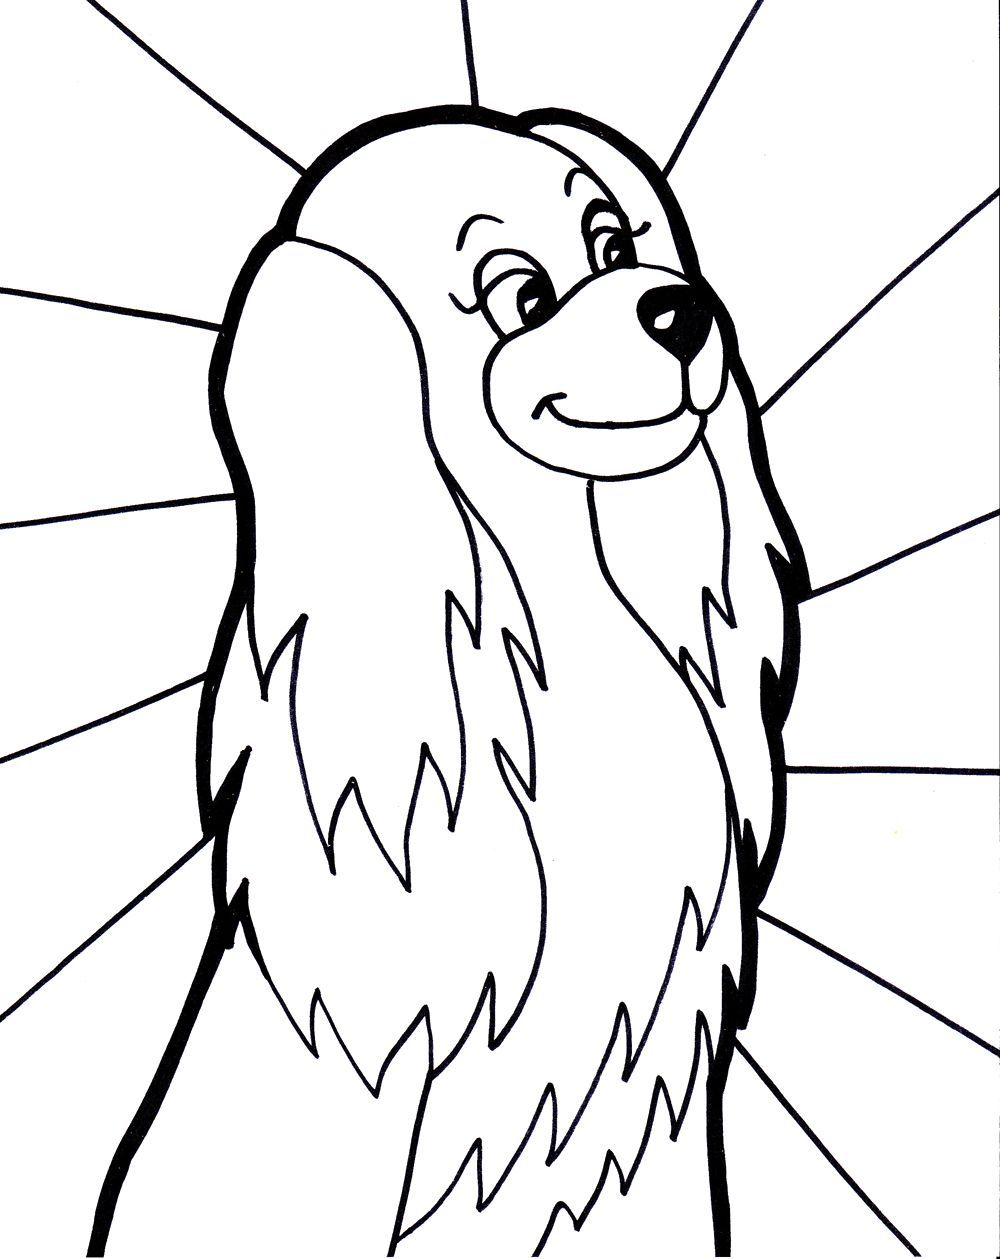 Dog Coloring Pages For Girls Dog Coloring Page Girl And Dog Puppy Coloring Pages [ 1259 x 1000 Pixel ]